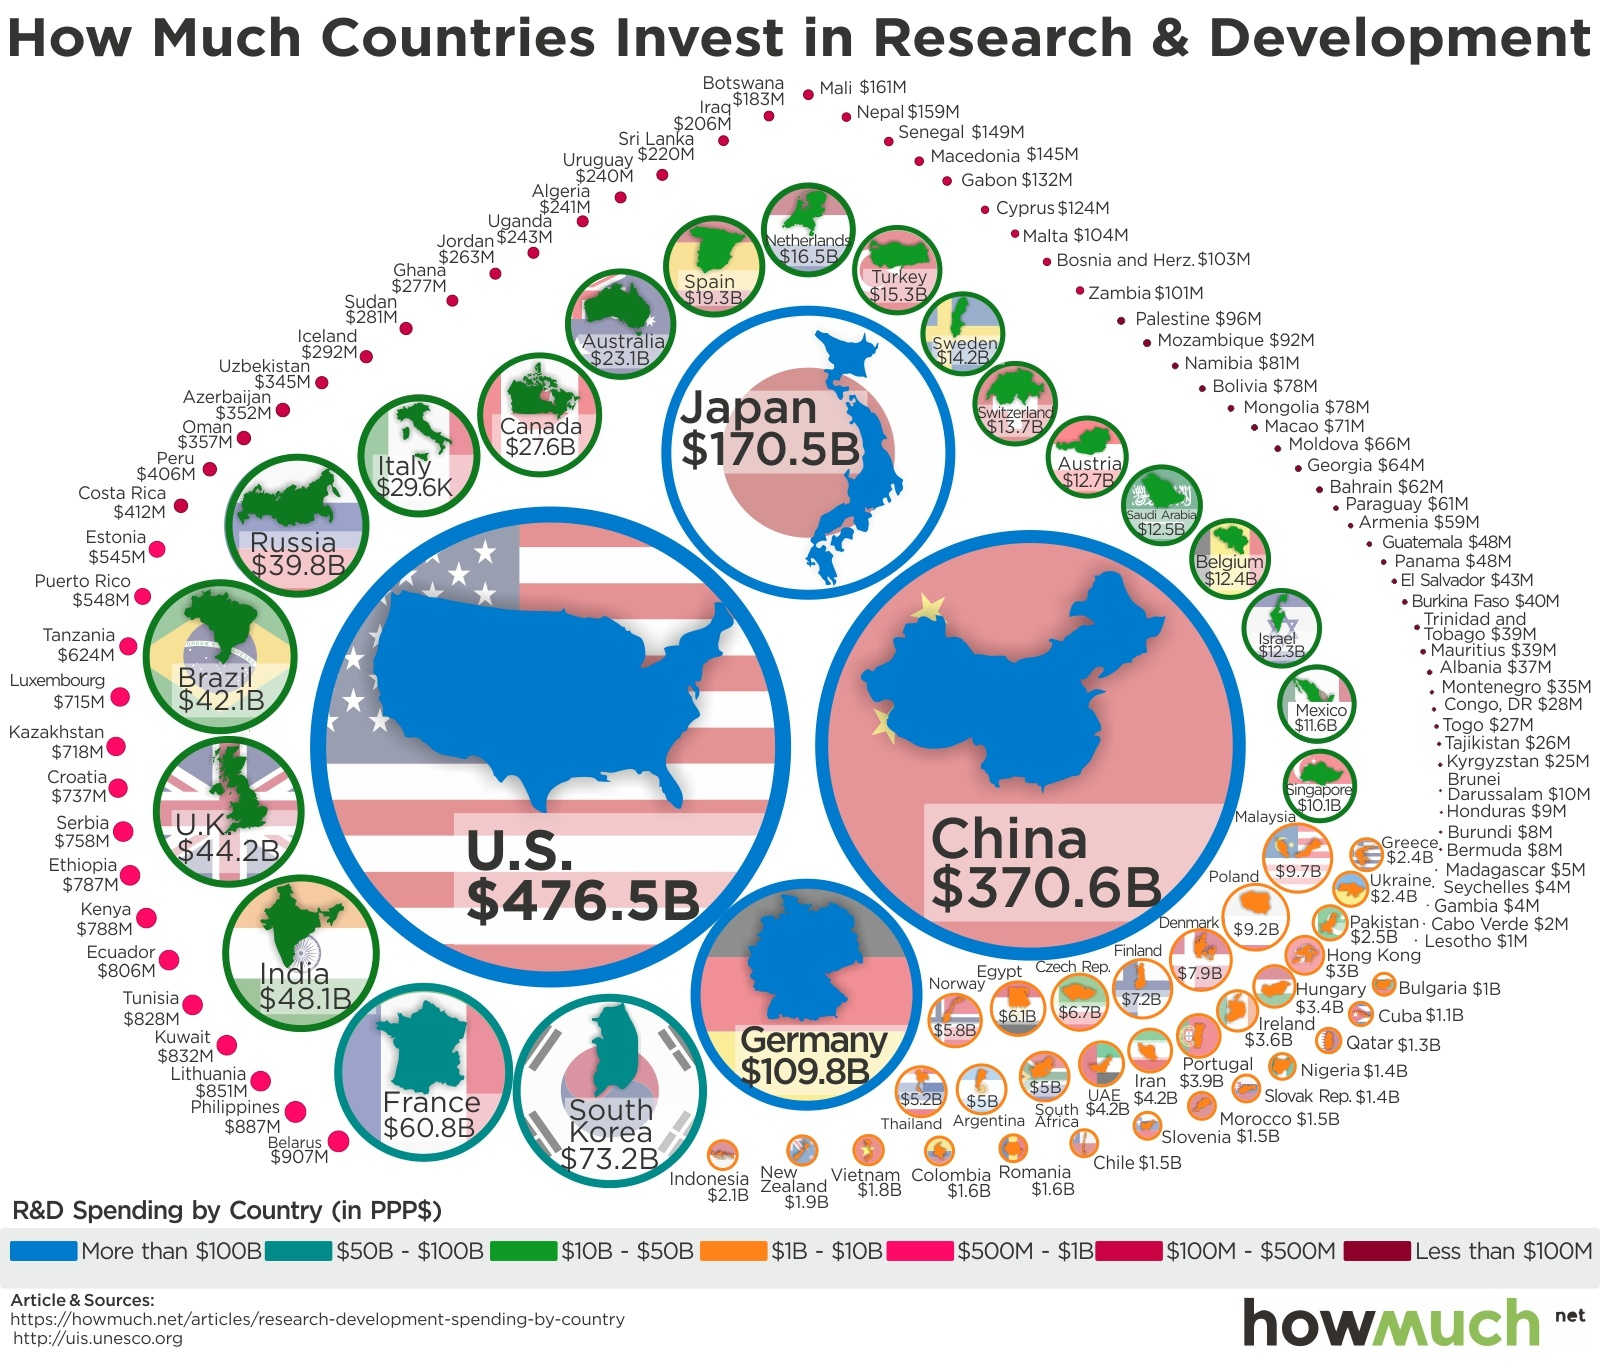 Find Out How Much Your Country Spends on Research & Development